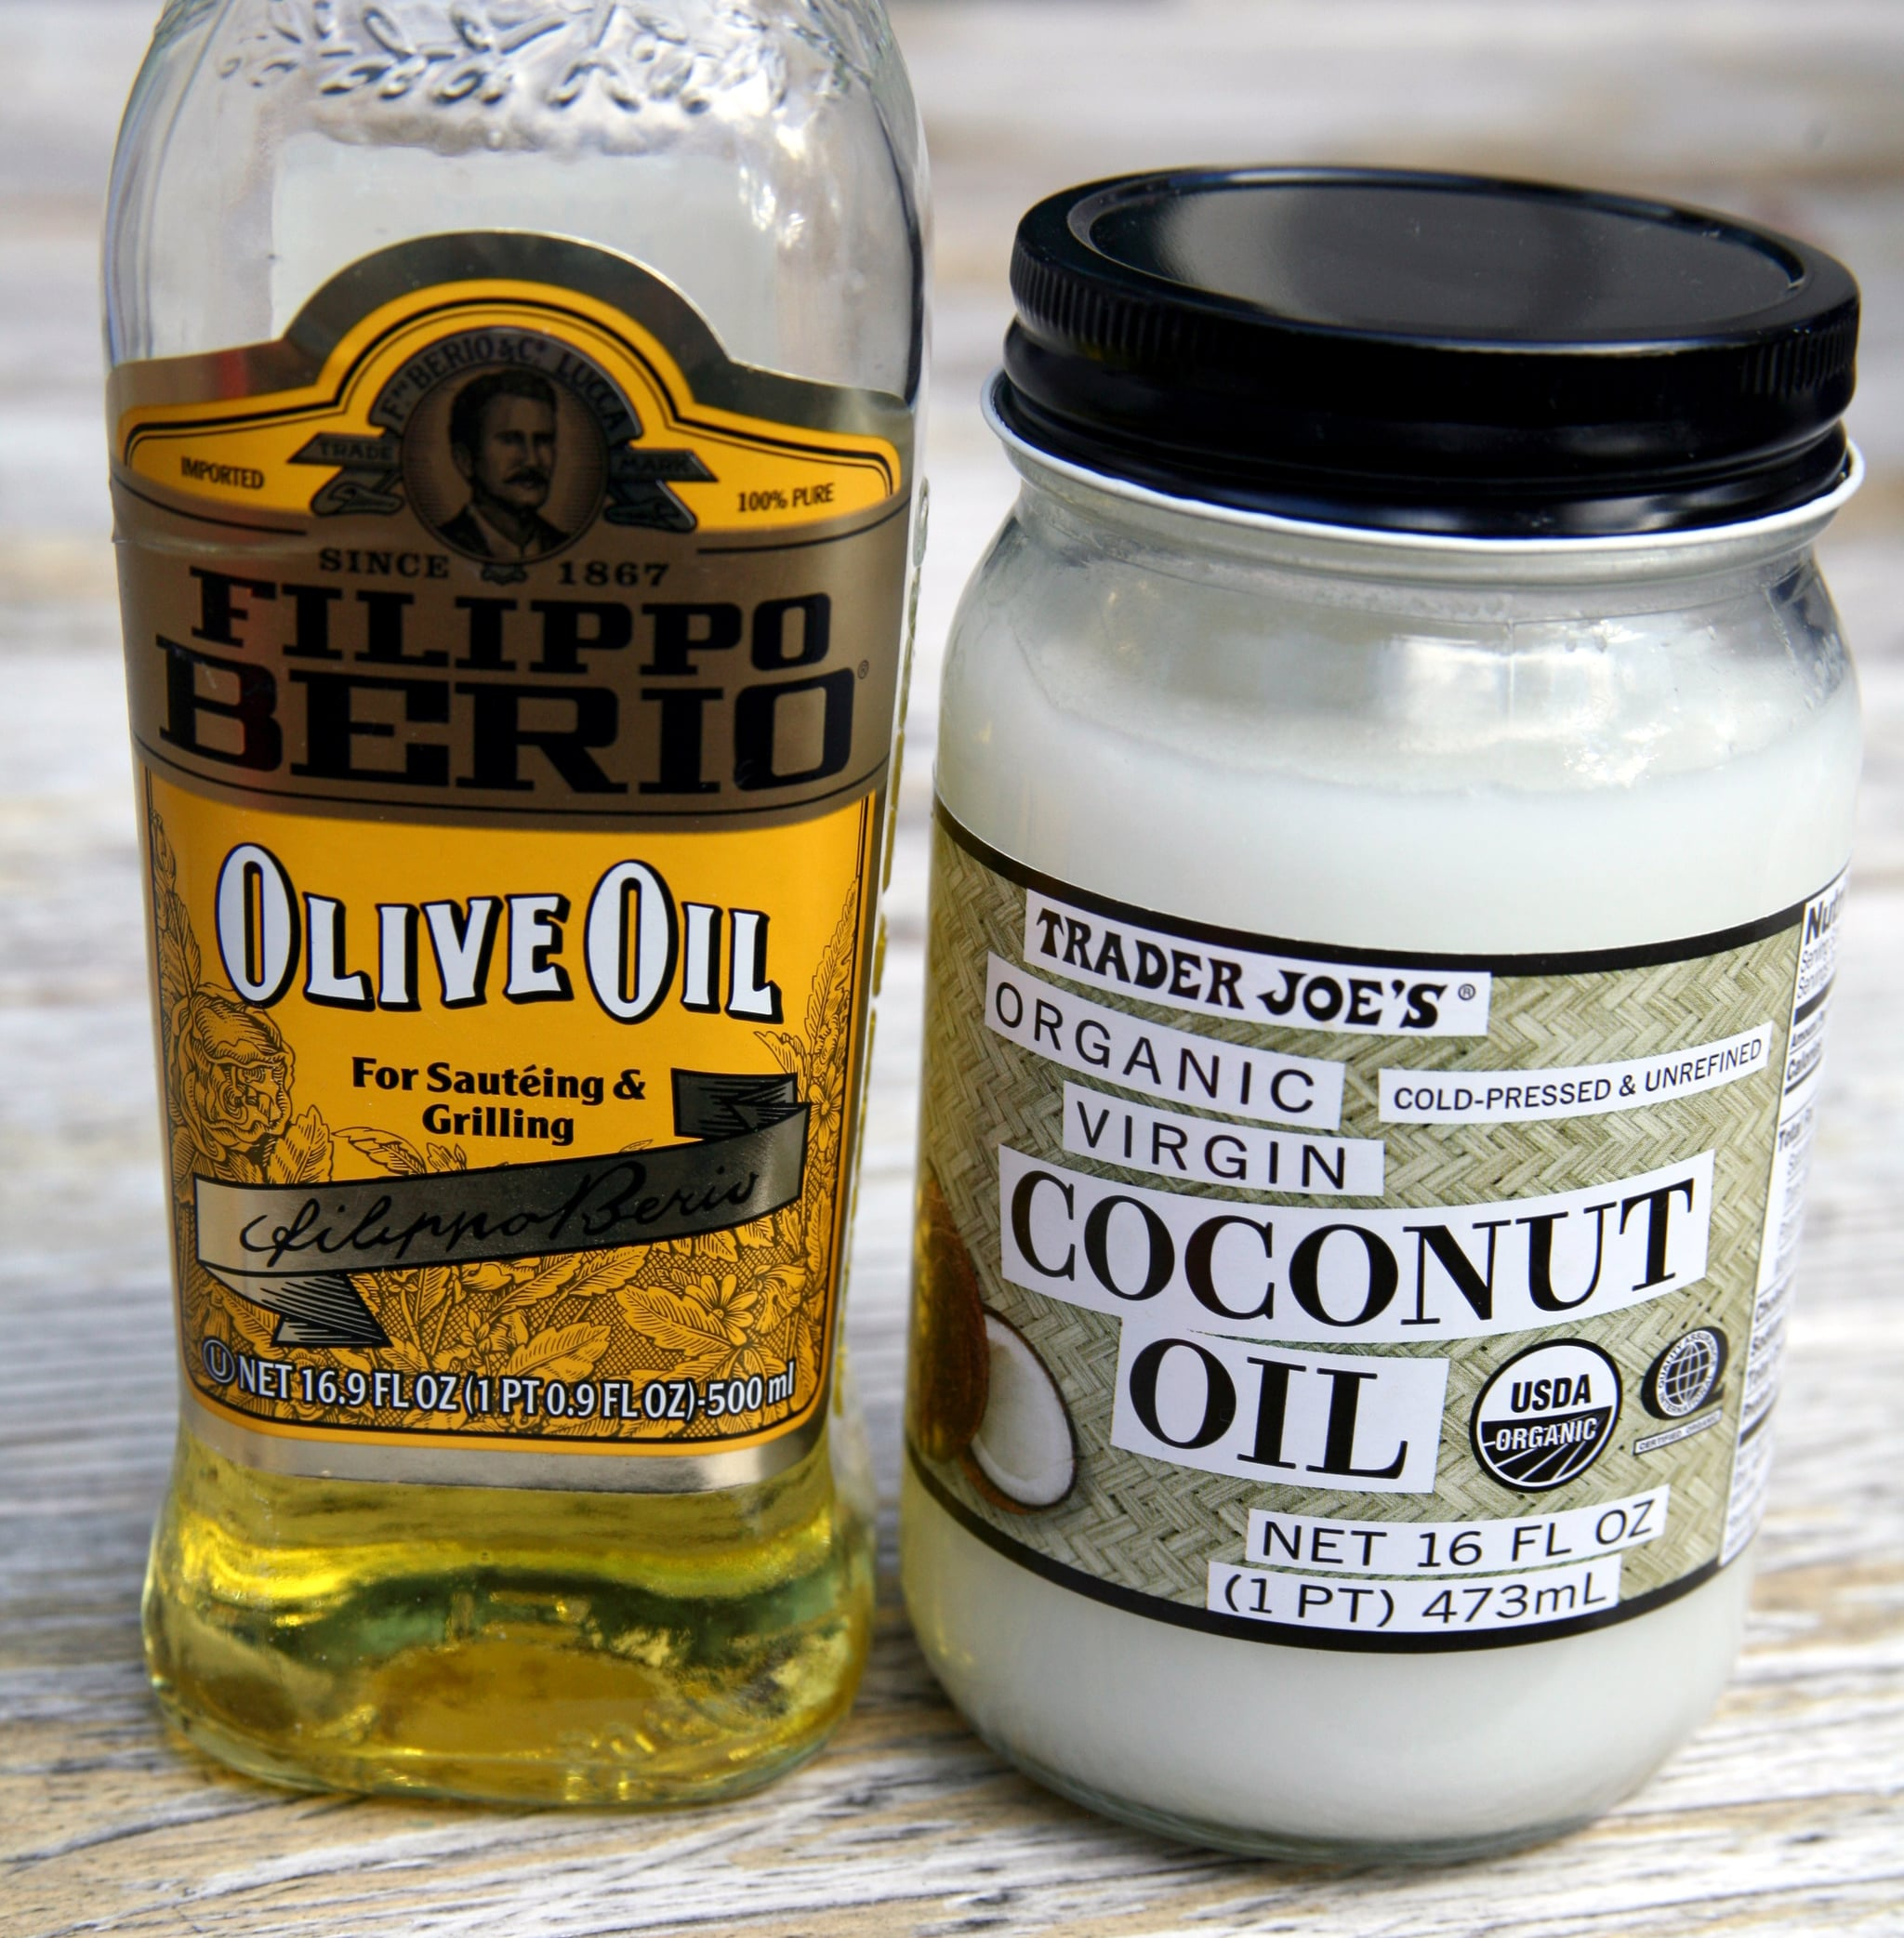 Sexual uses of coconut oil